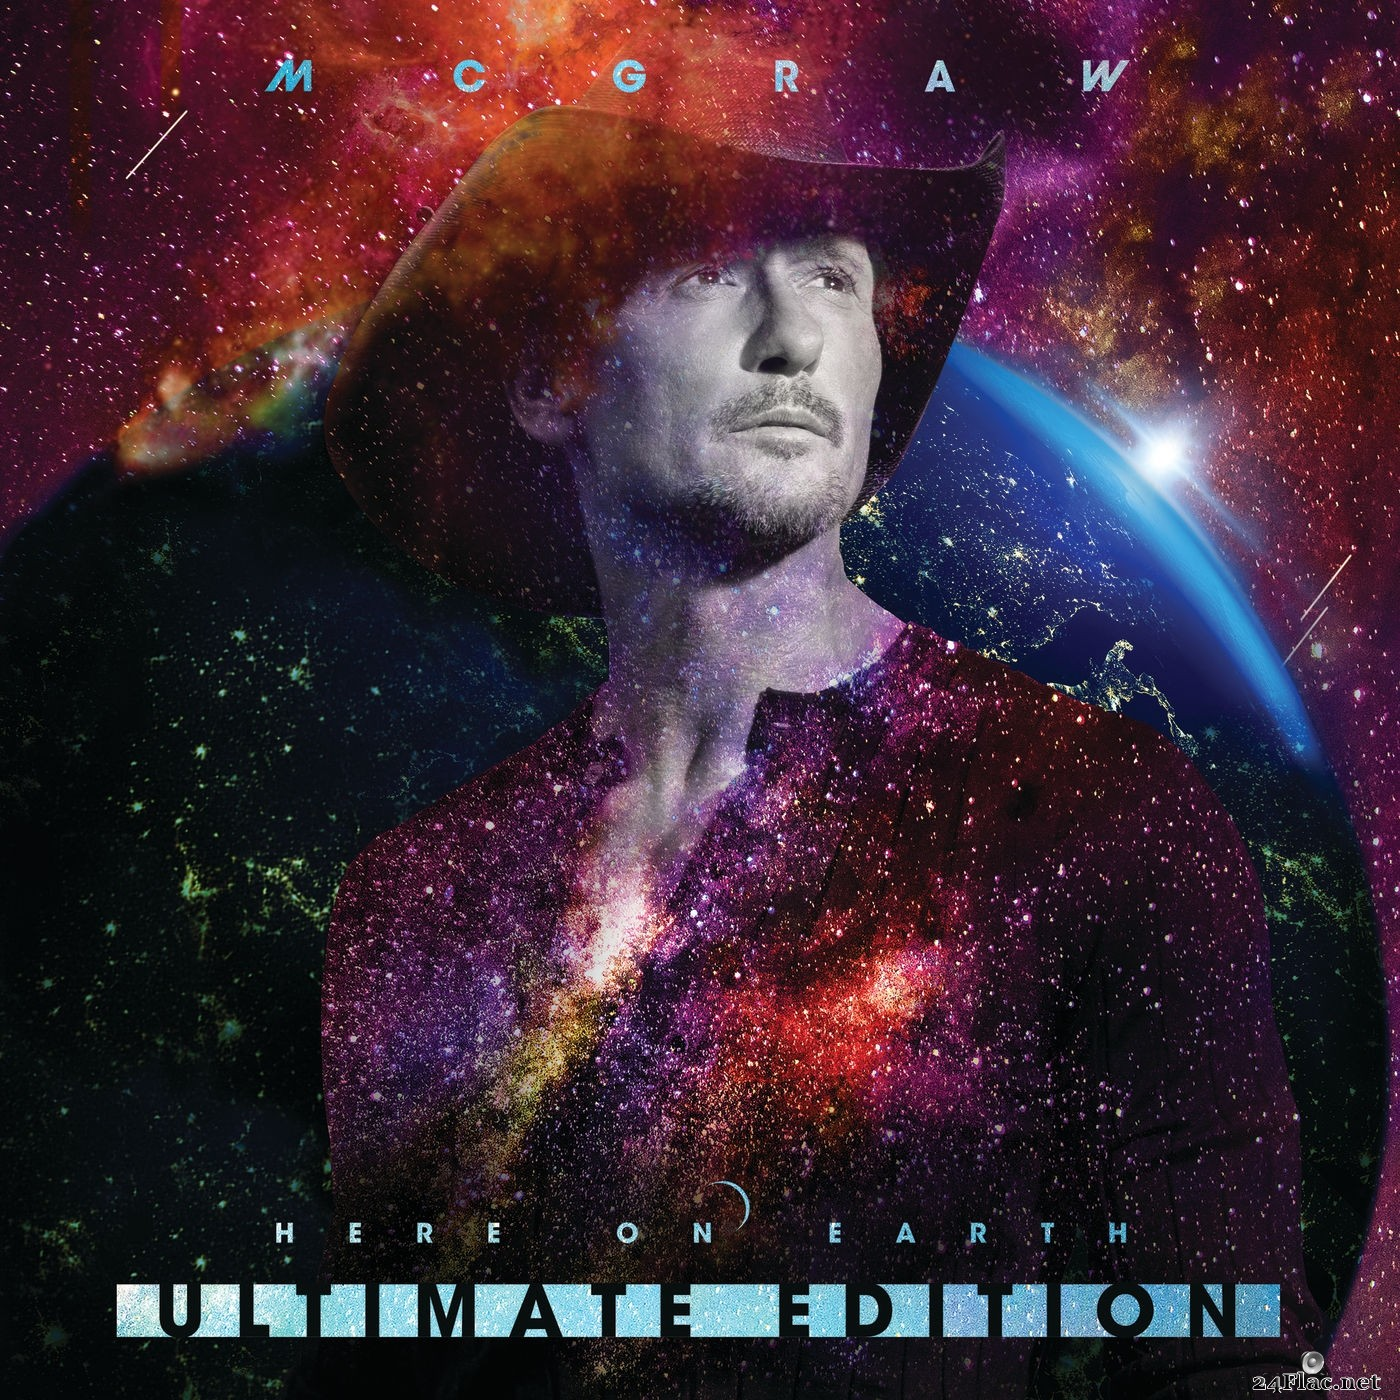 Tim McGraw - Here On Earth (Ultimate Edition) (2021) Hi-Res